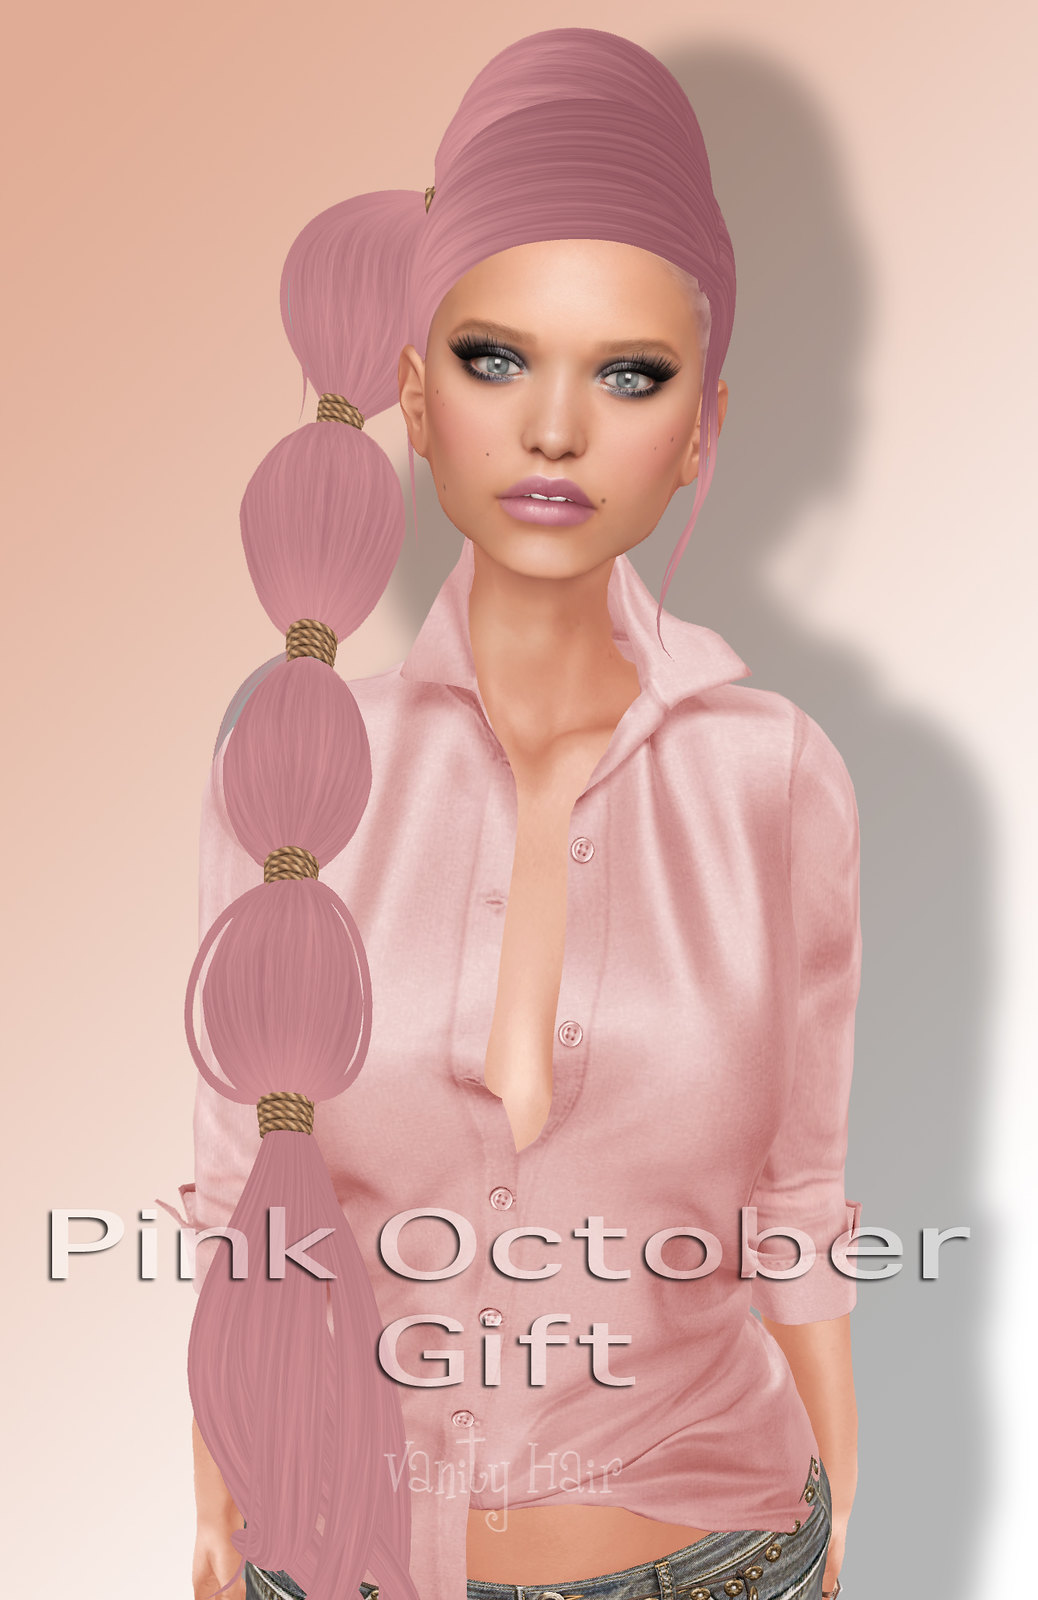 Vanityhair@Pink October